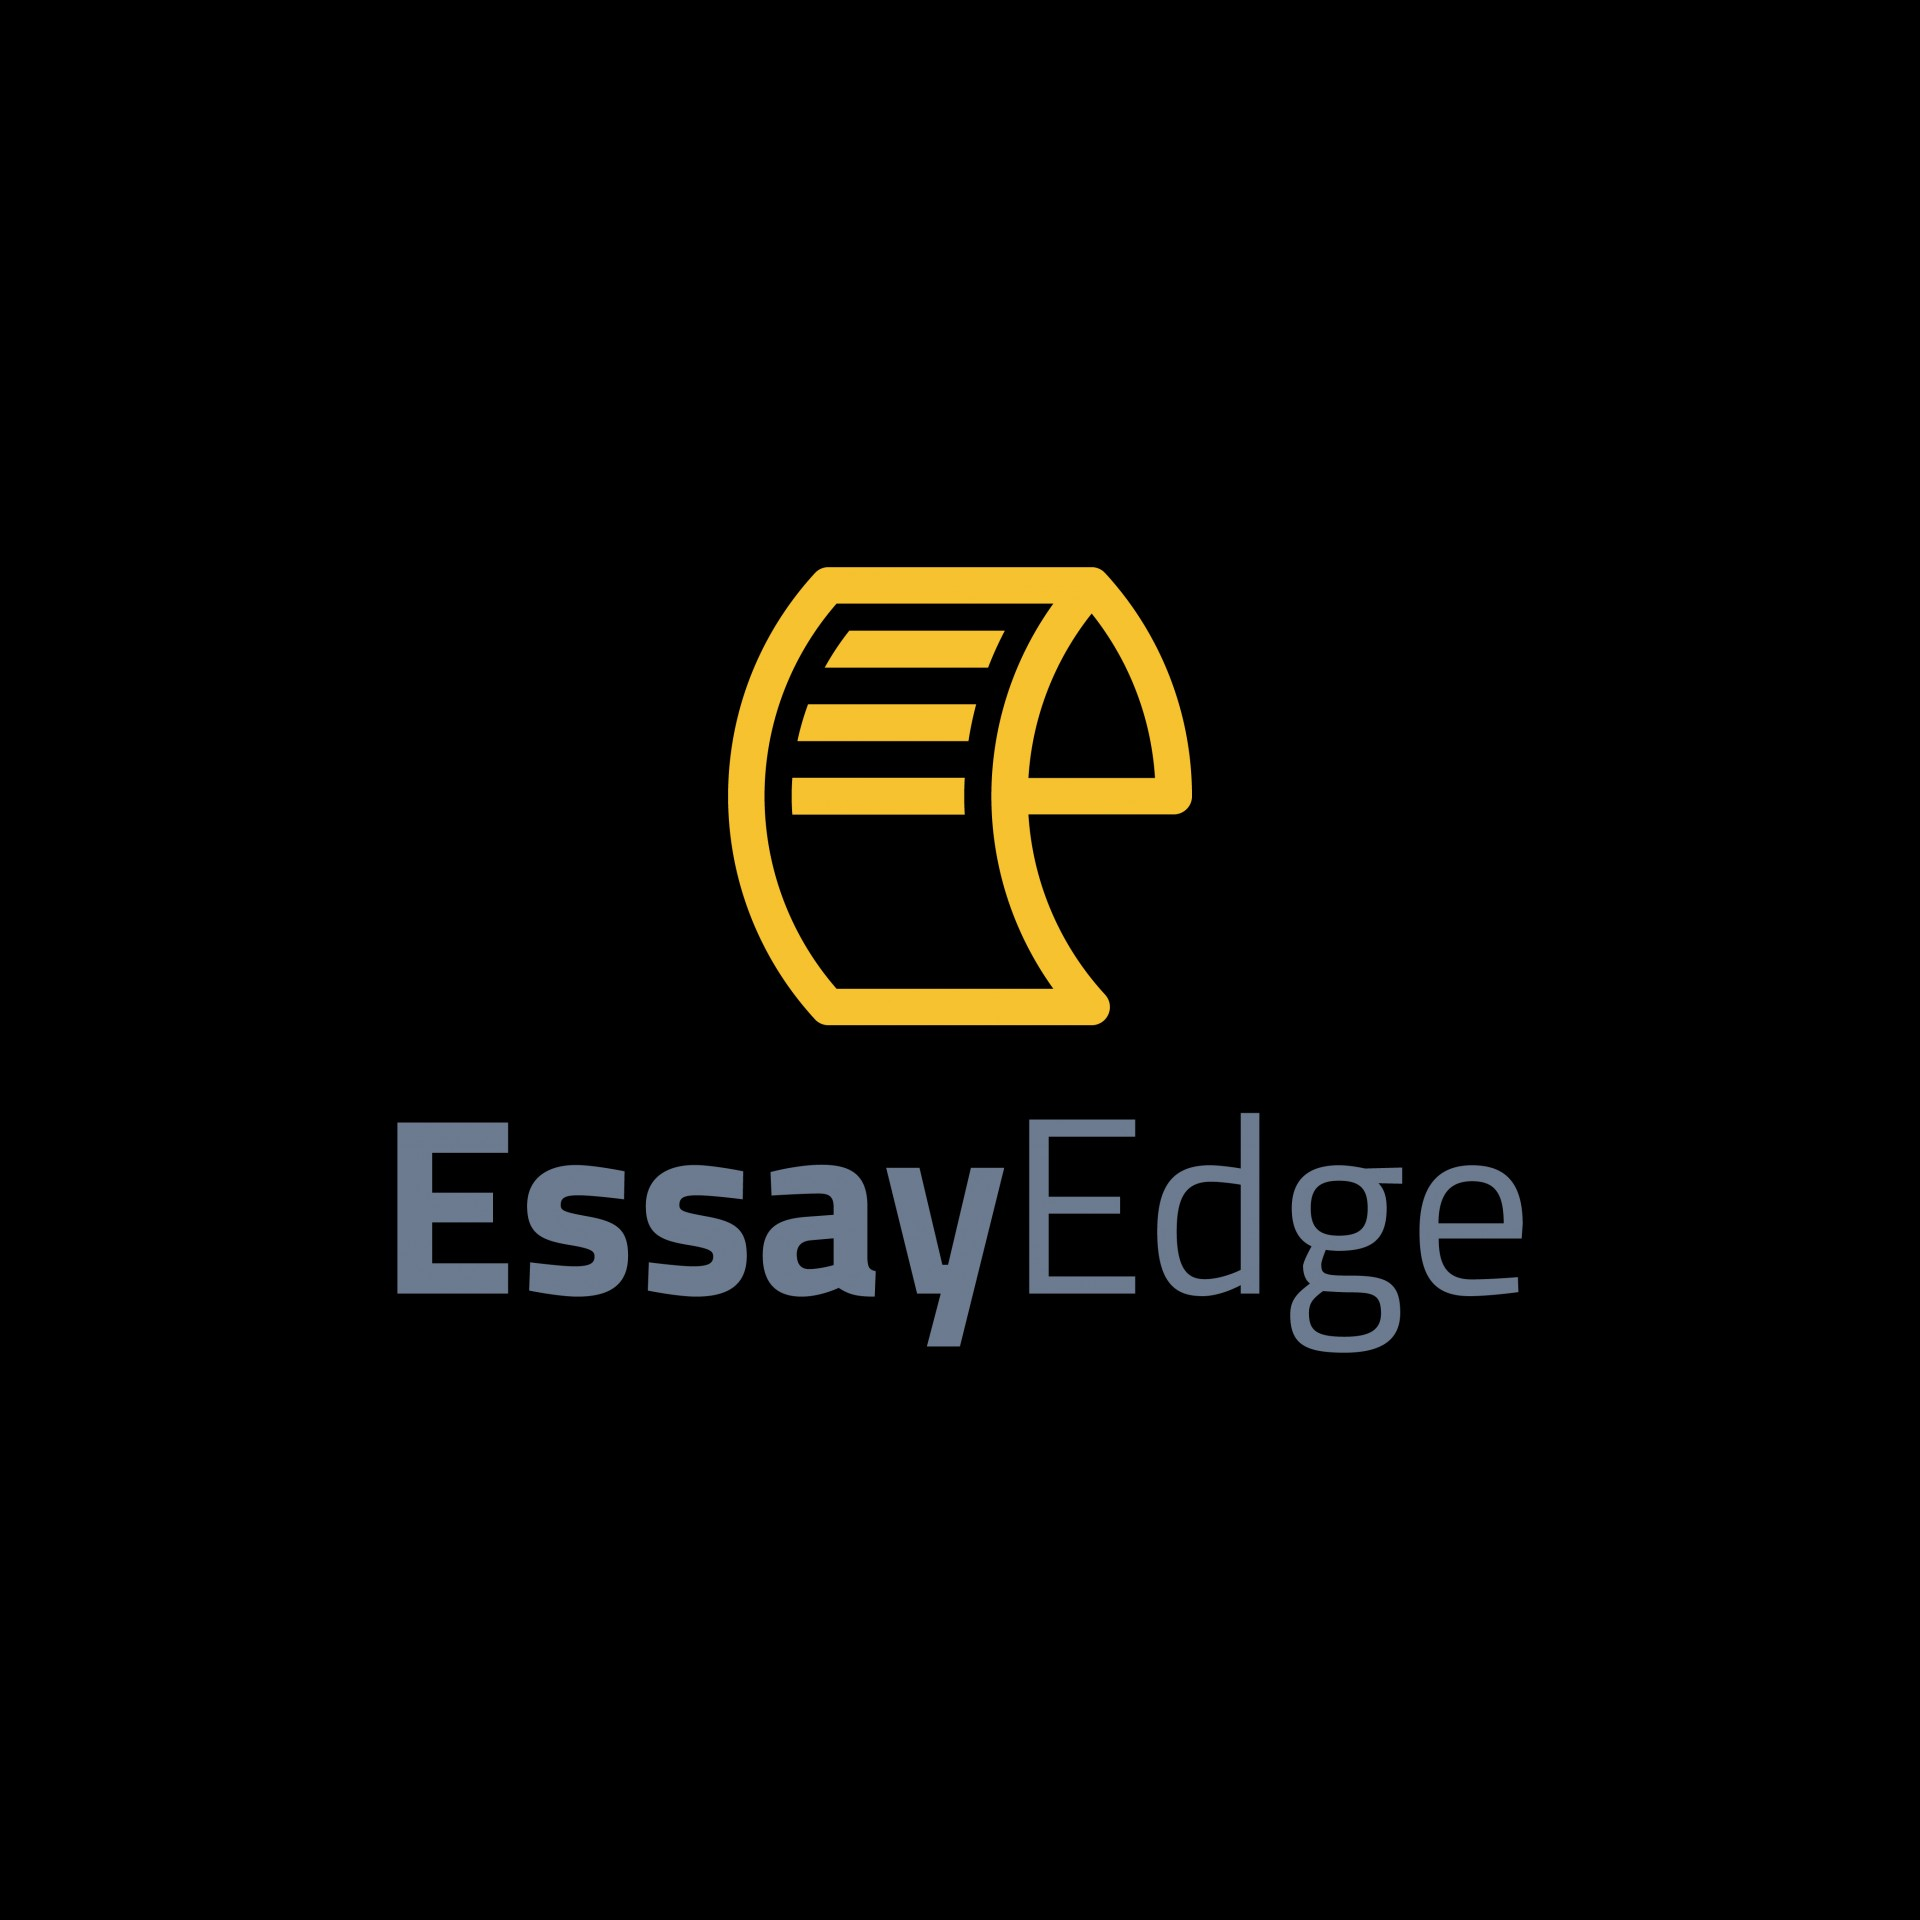 001 Essay Edge Final Png Unusual Essayedge Personal Statement Review Pricing 1920